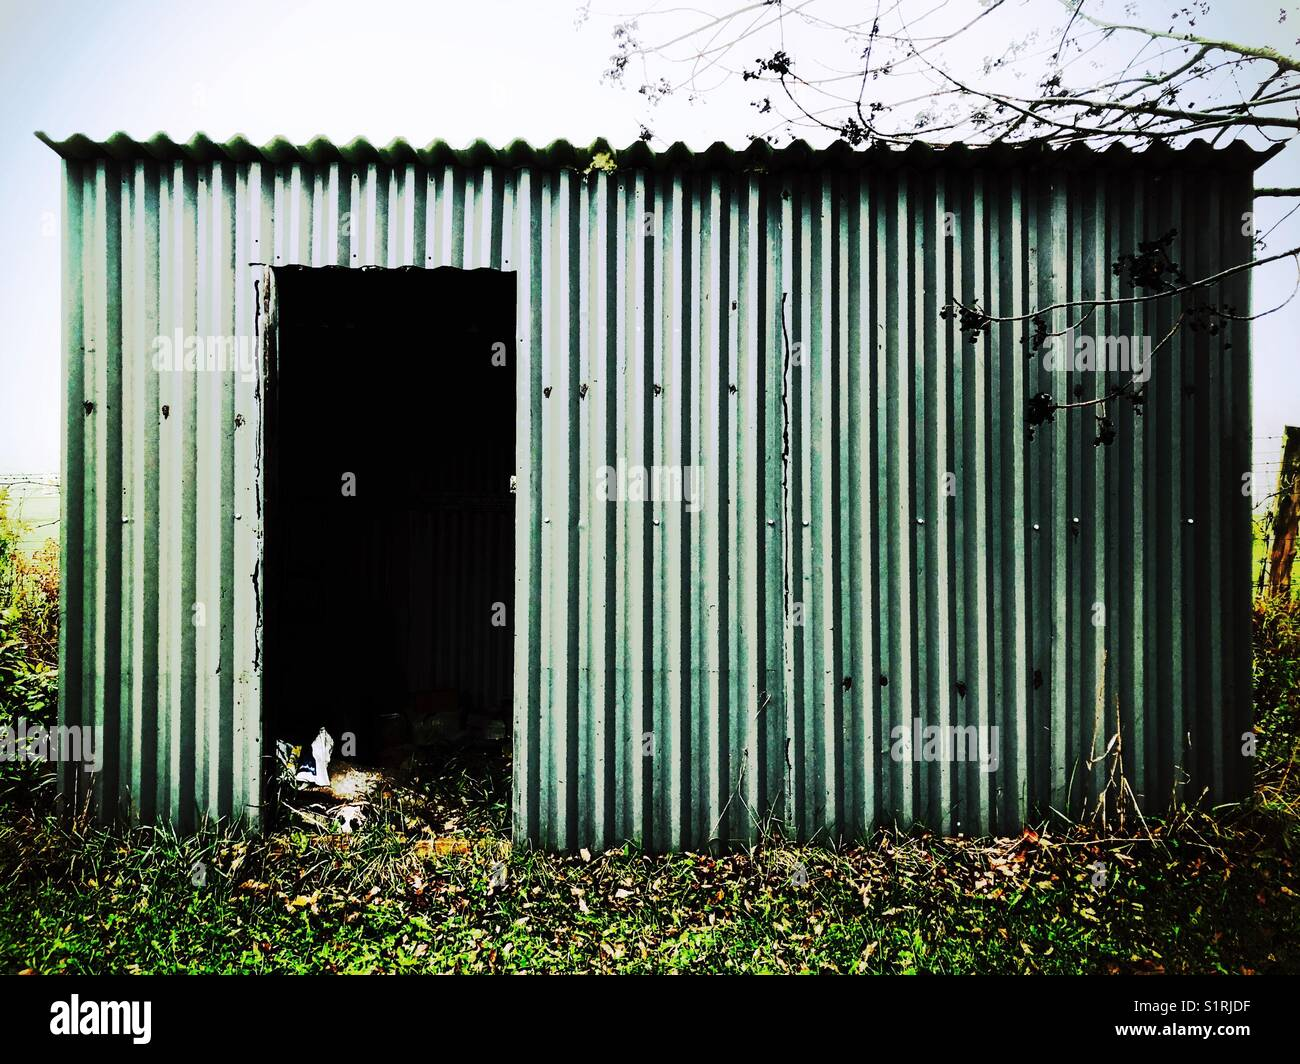 Creepy old metal shack with no door full of junk - Stock Image